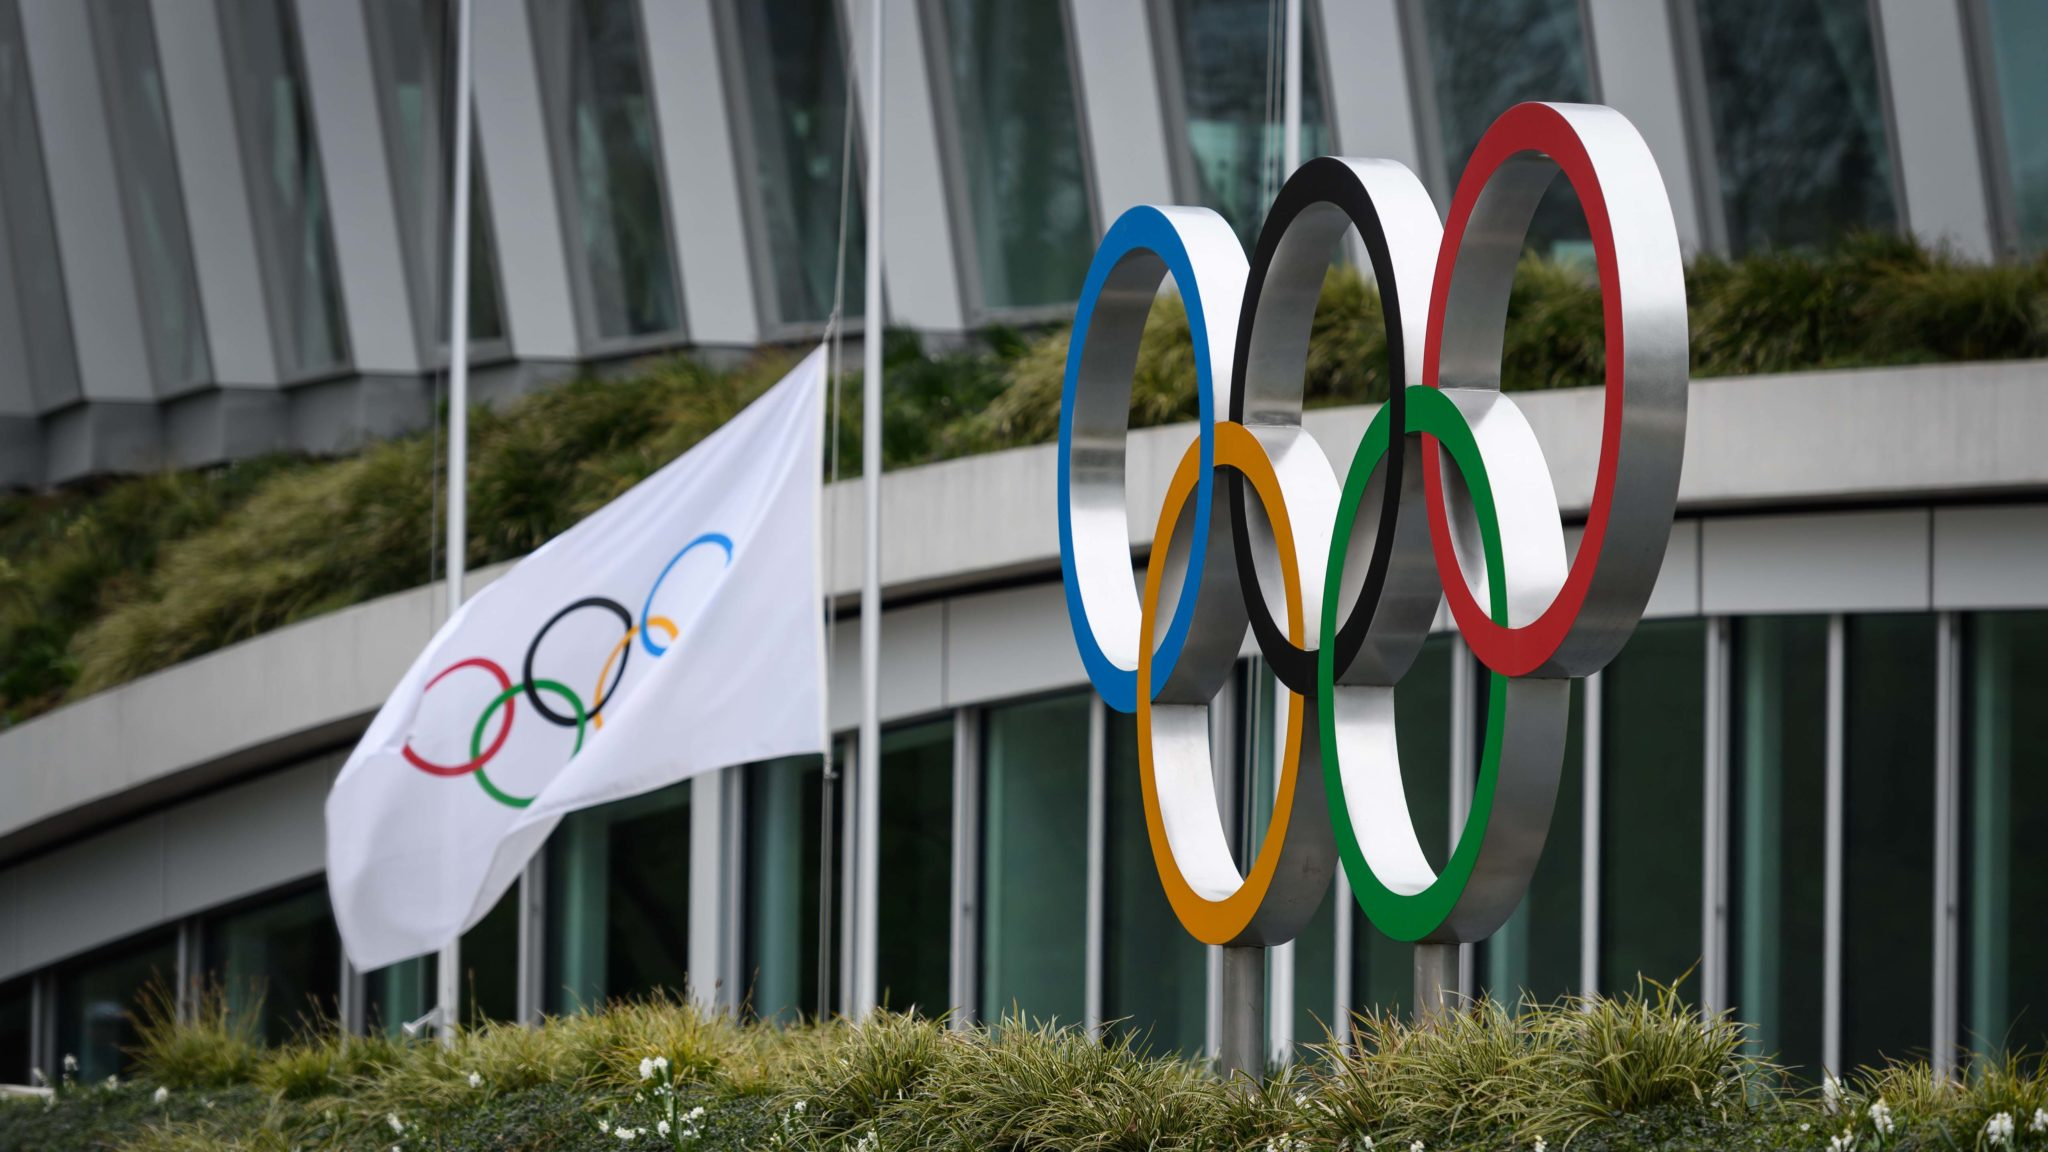 Athletes Already Qualified For The Tokyo 2020 Olympics Will Need To Be Picked Again By Their Respective National Olympic Committees (nocs) To Compete At The Postponed Games In 2021. The Internationa